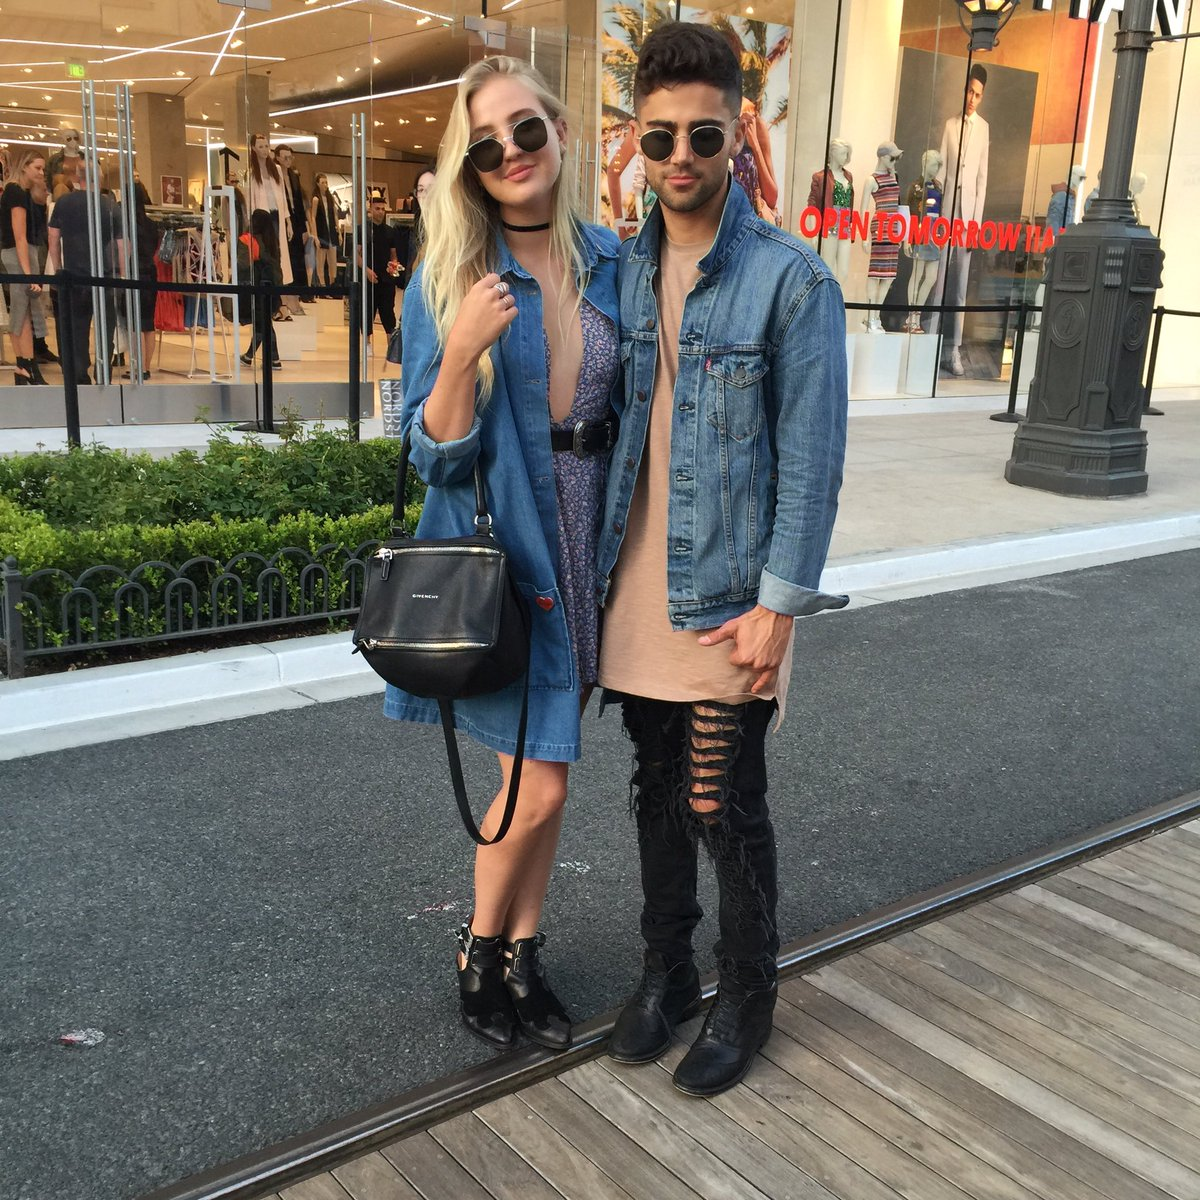 THE couple of the century going hard at our Glendale Topman & Topshop premier party! @maxehrich @veronica_dunne https://t.co/Vw5B6fODyC